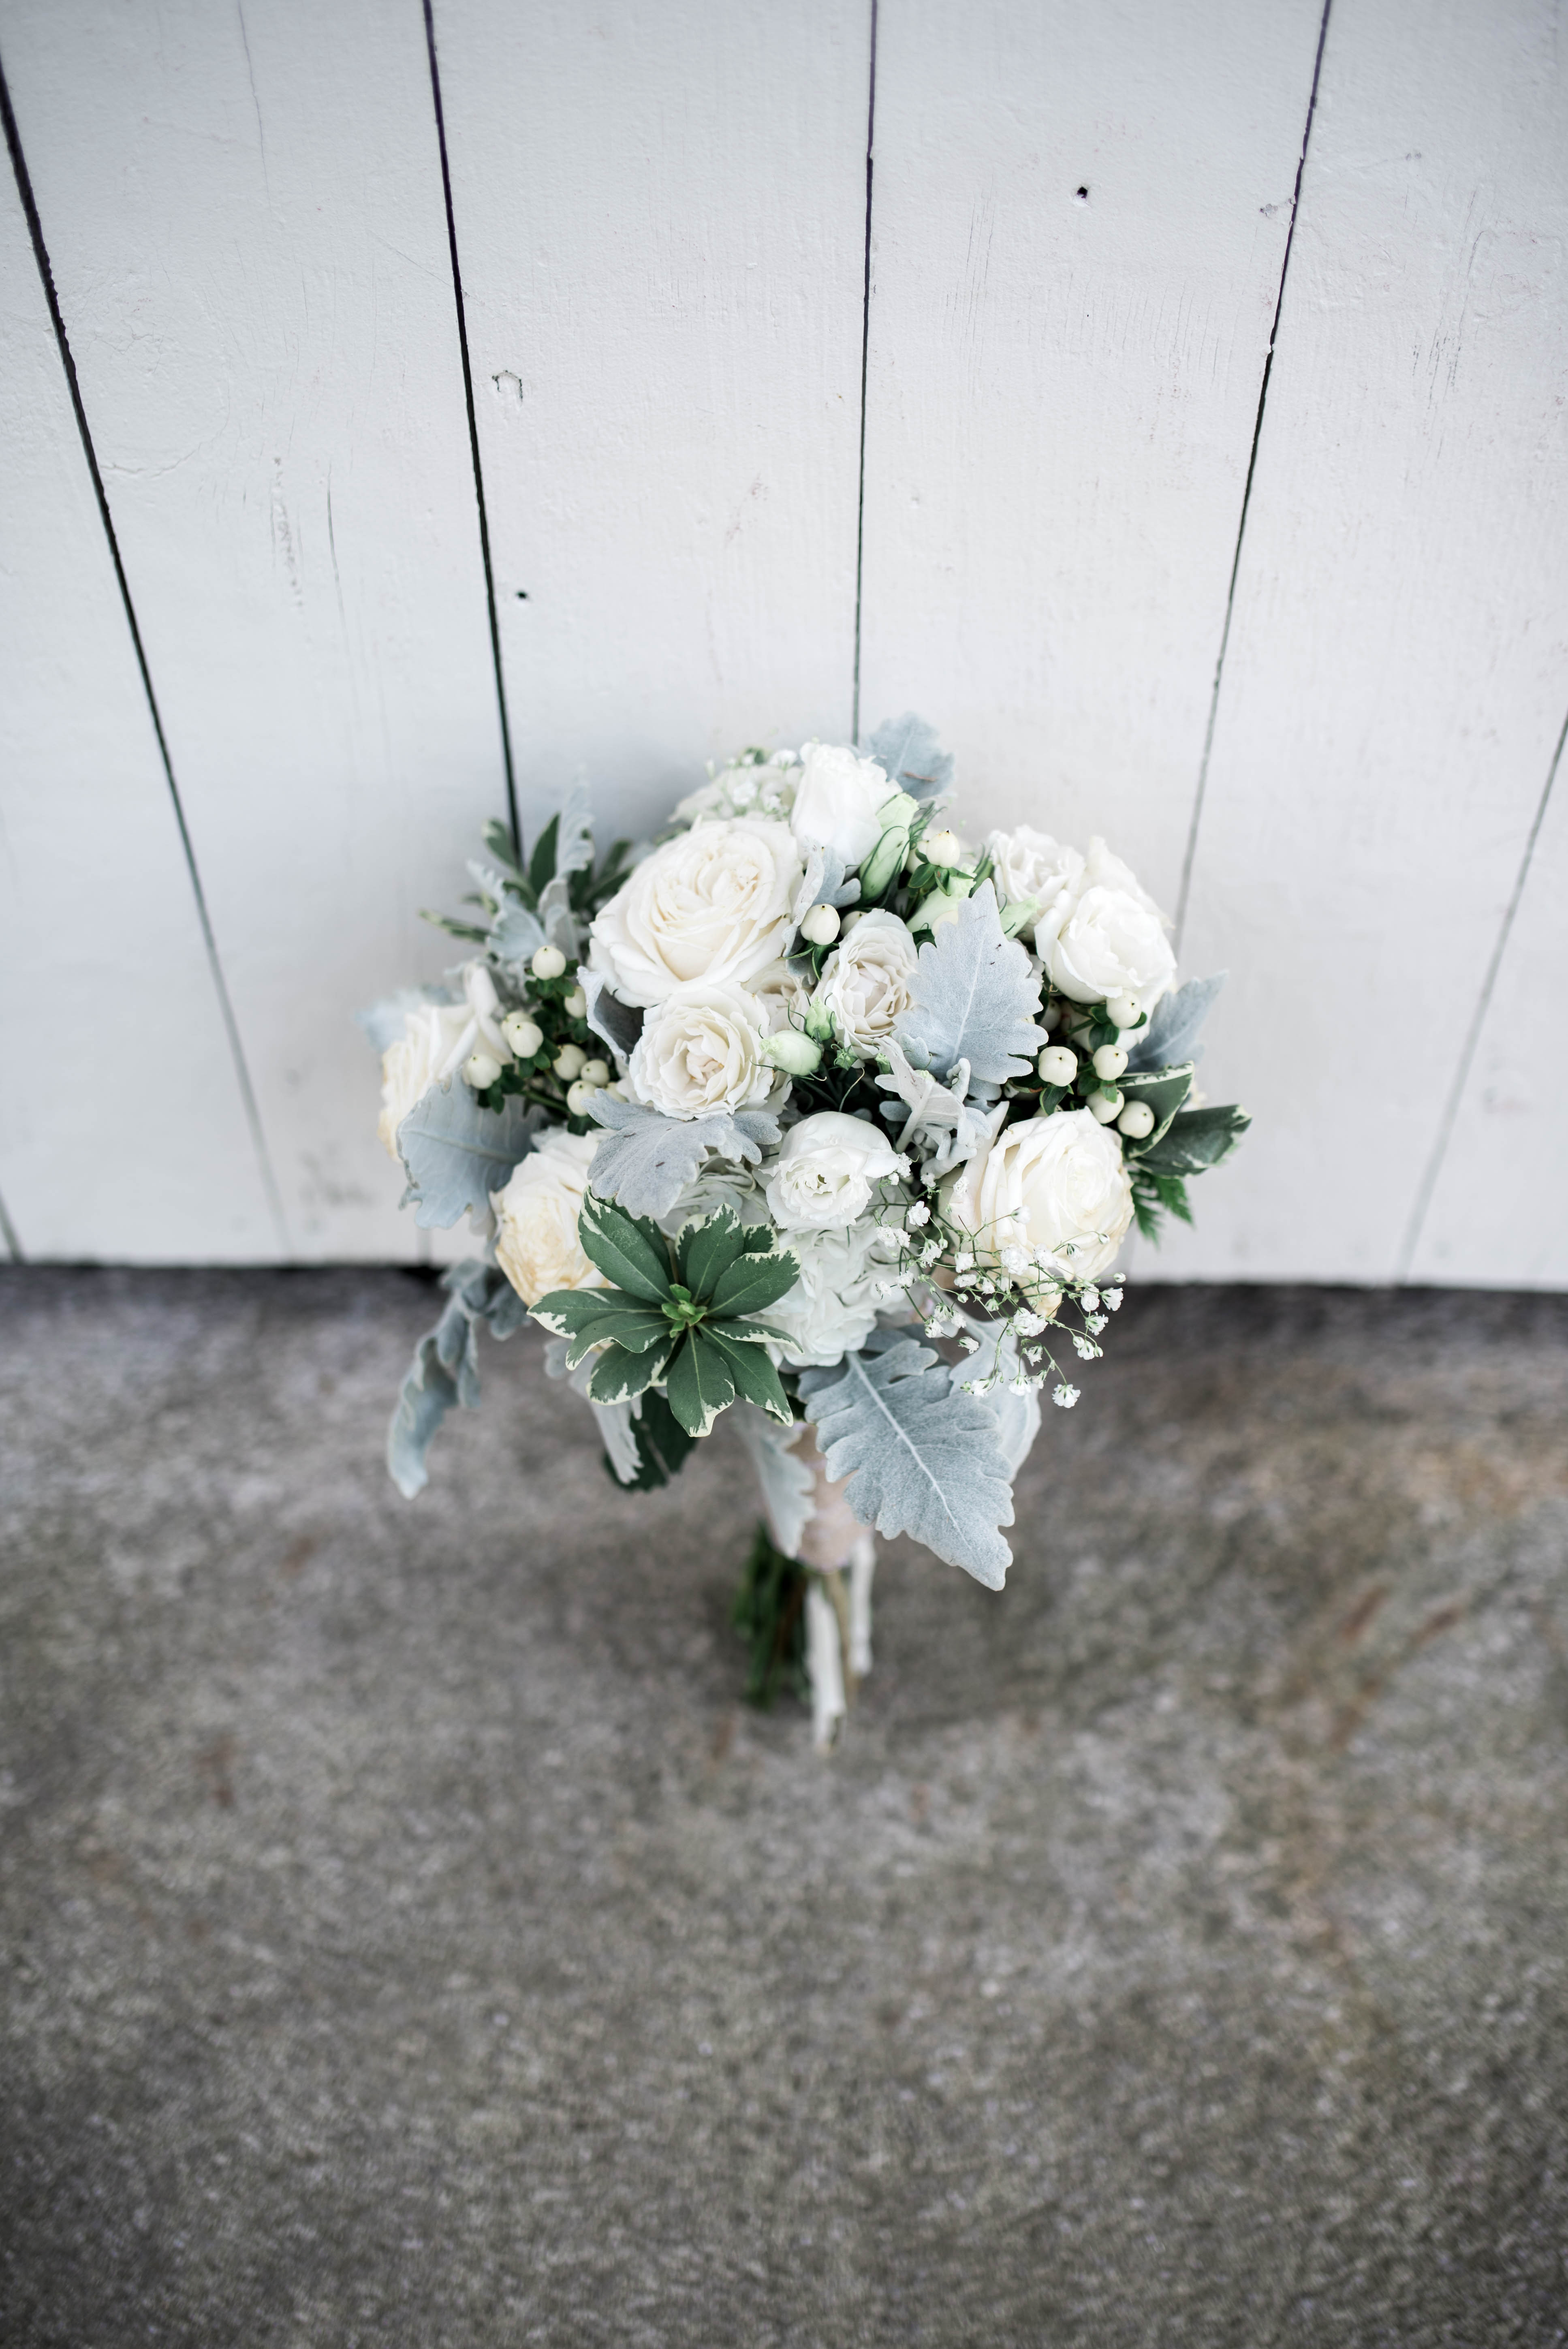 Flowers by Hoboken and image by Rachel Campbell Photography – bridal bouquet, wedding flowers, wedding bouquet, bouquet of flowers, birthday centerpiece flowers, luncheon flowers, special dinner flowers, centerpiece flowers